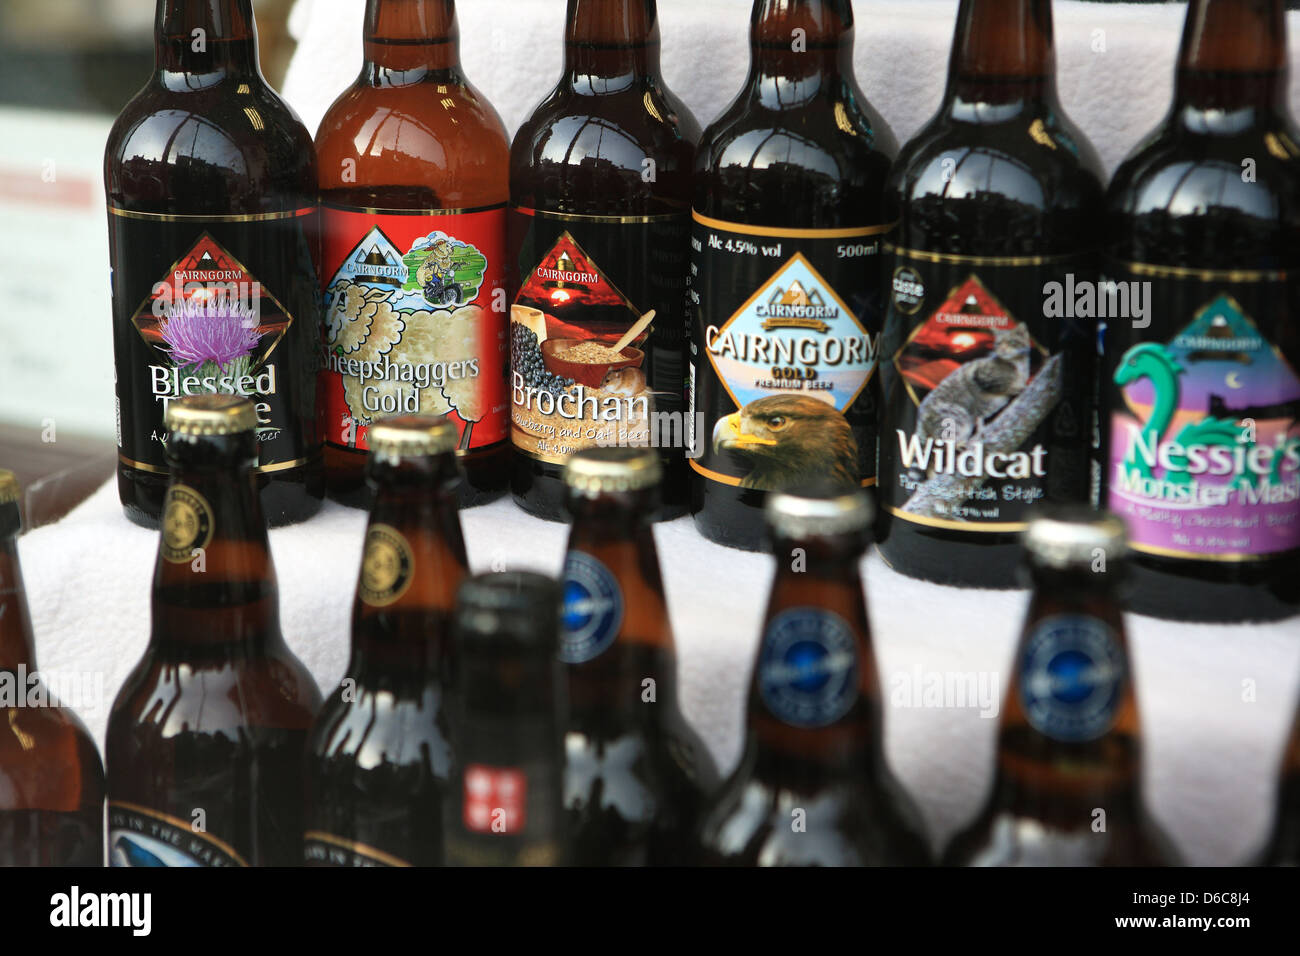 Scottish Real Ales on sale in a shop in Scotland - Stock Image